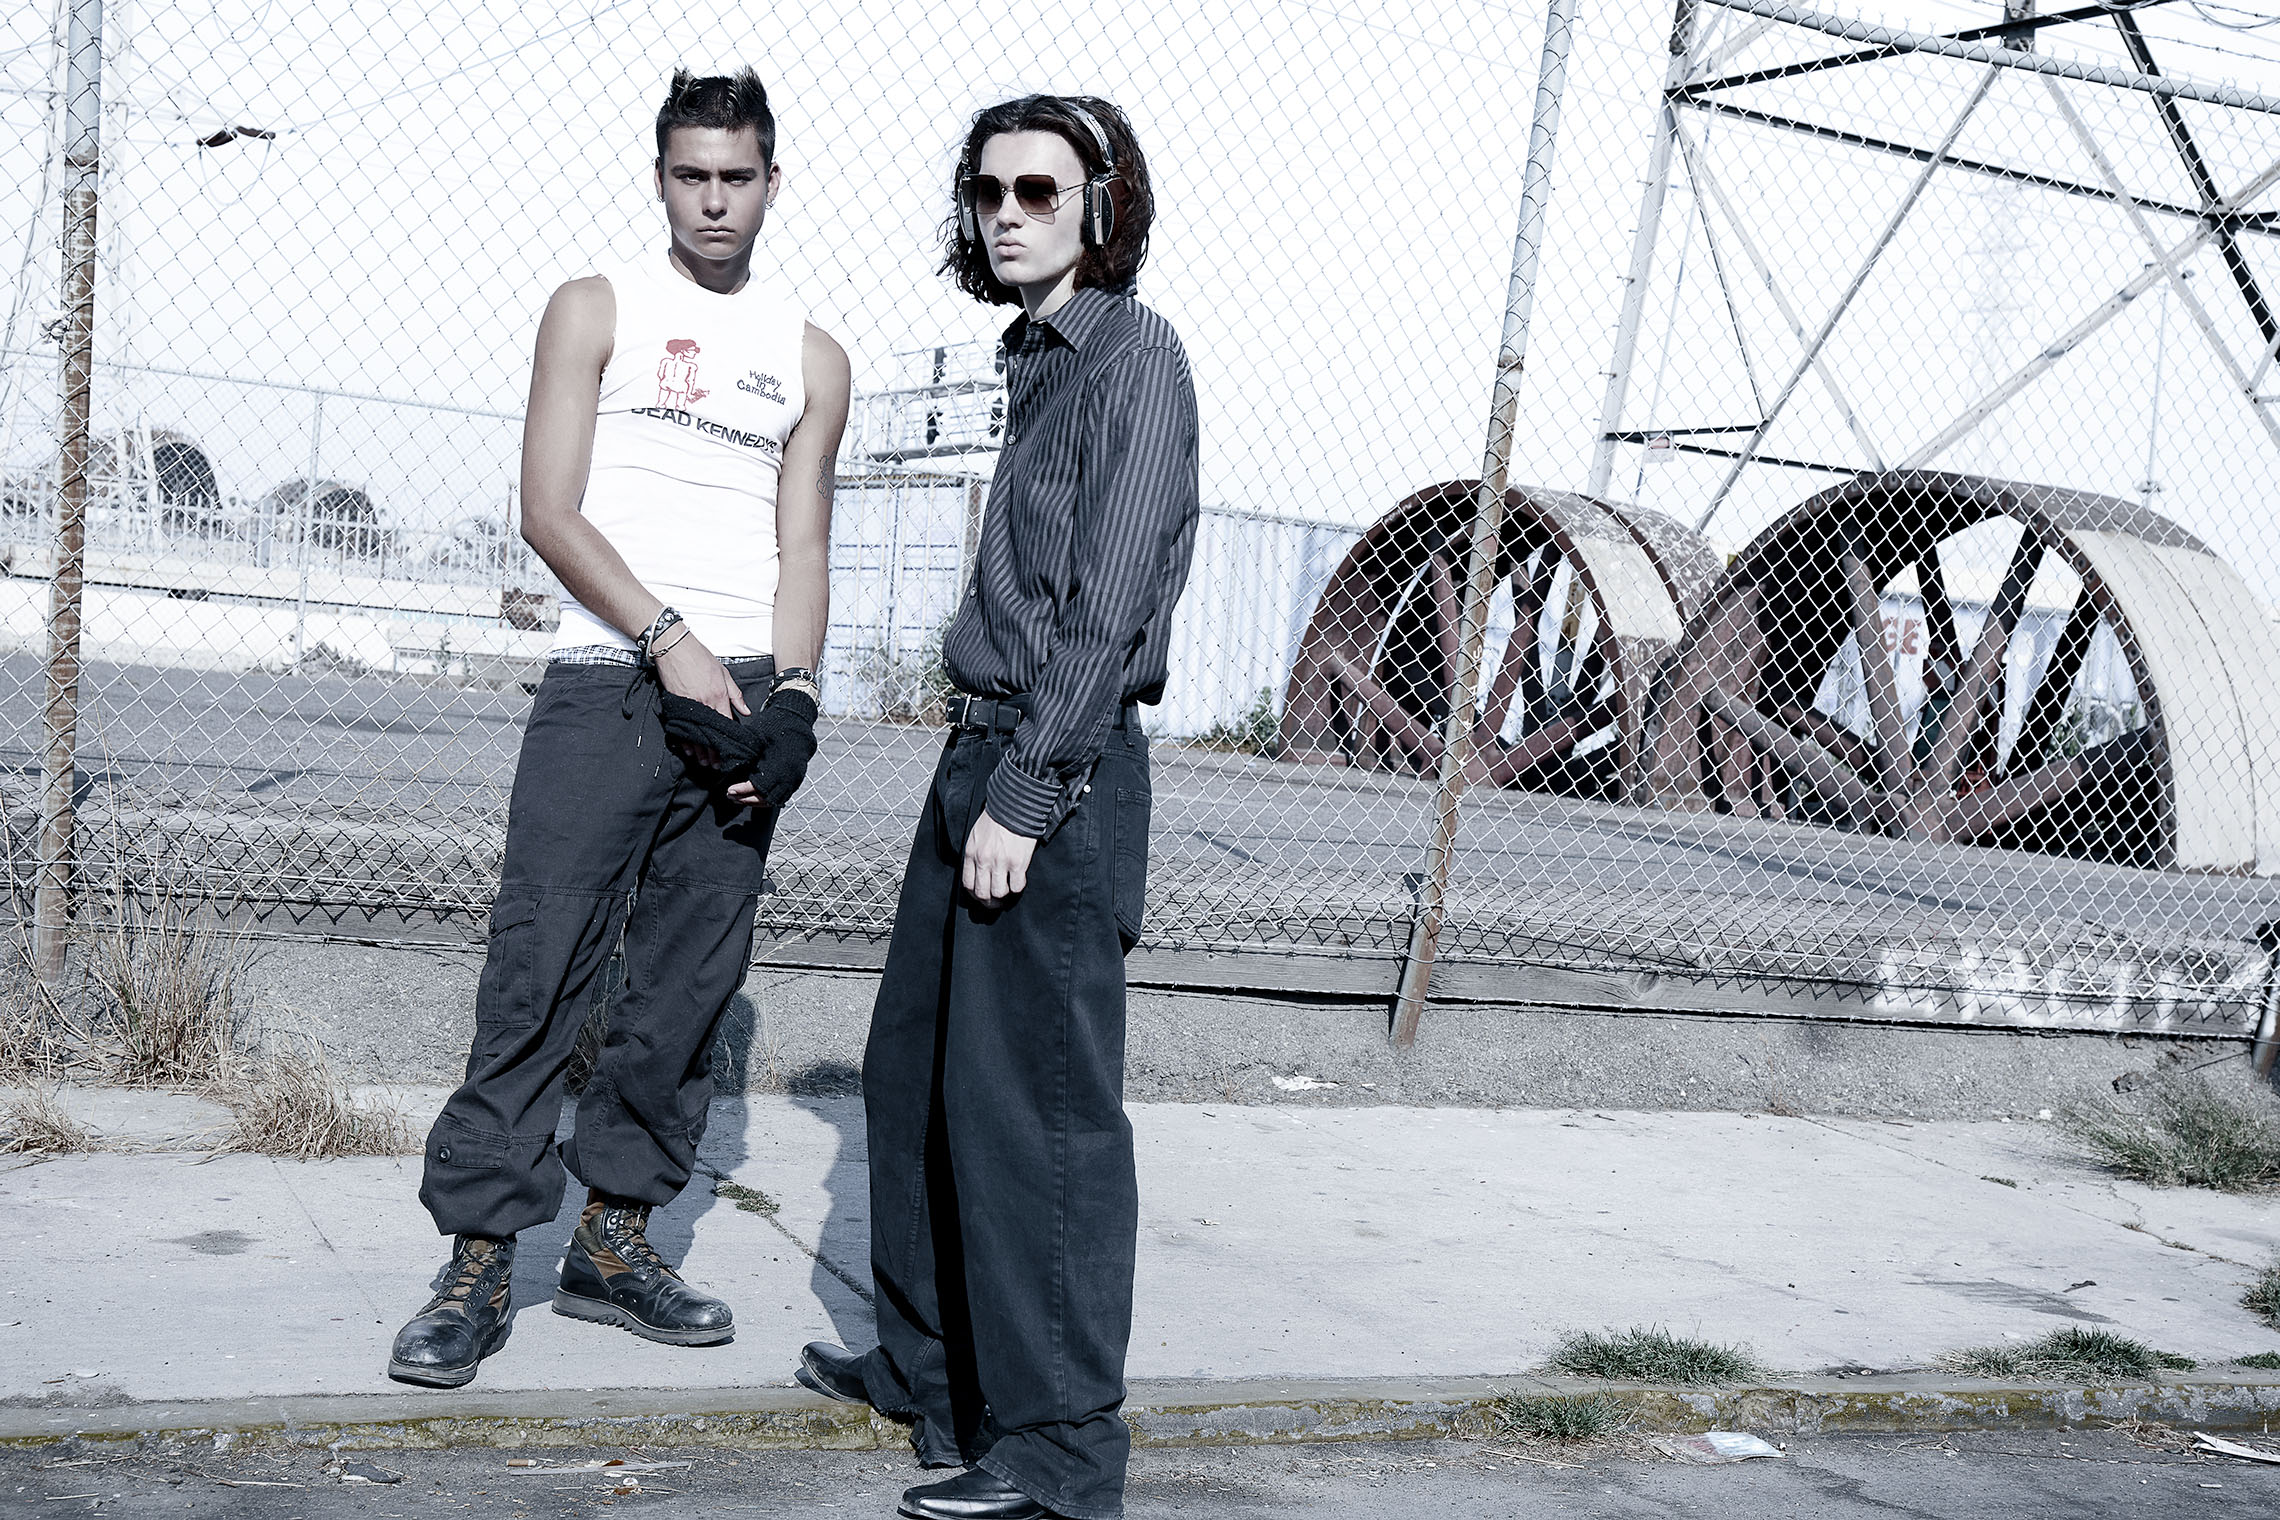 two men at iron fence looking cool at male fashion and accessory shoot, two giant industrial style wheels of metal in the background, downtown LA